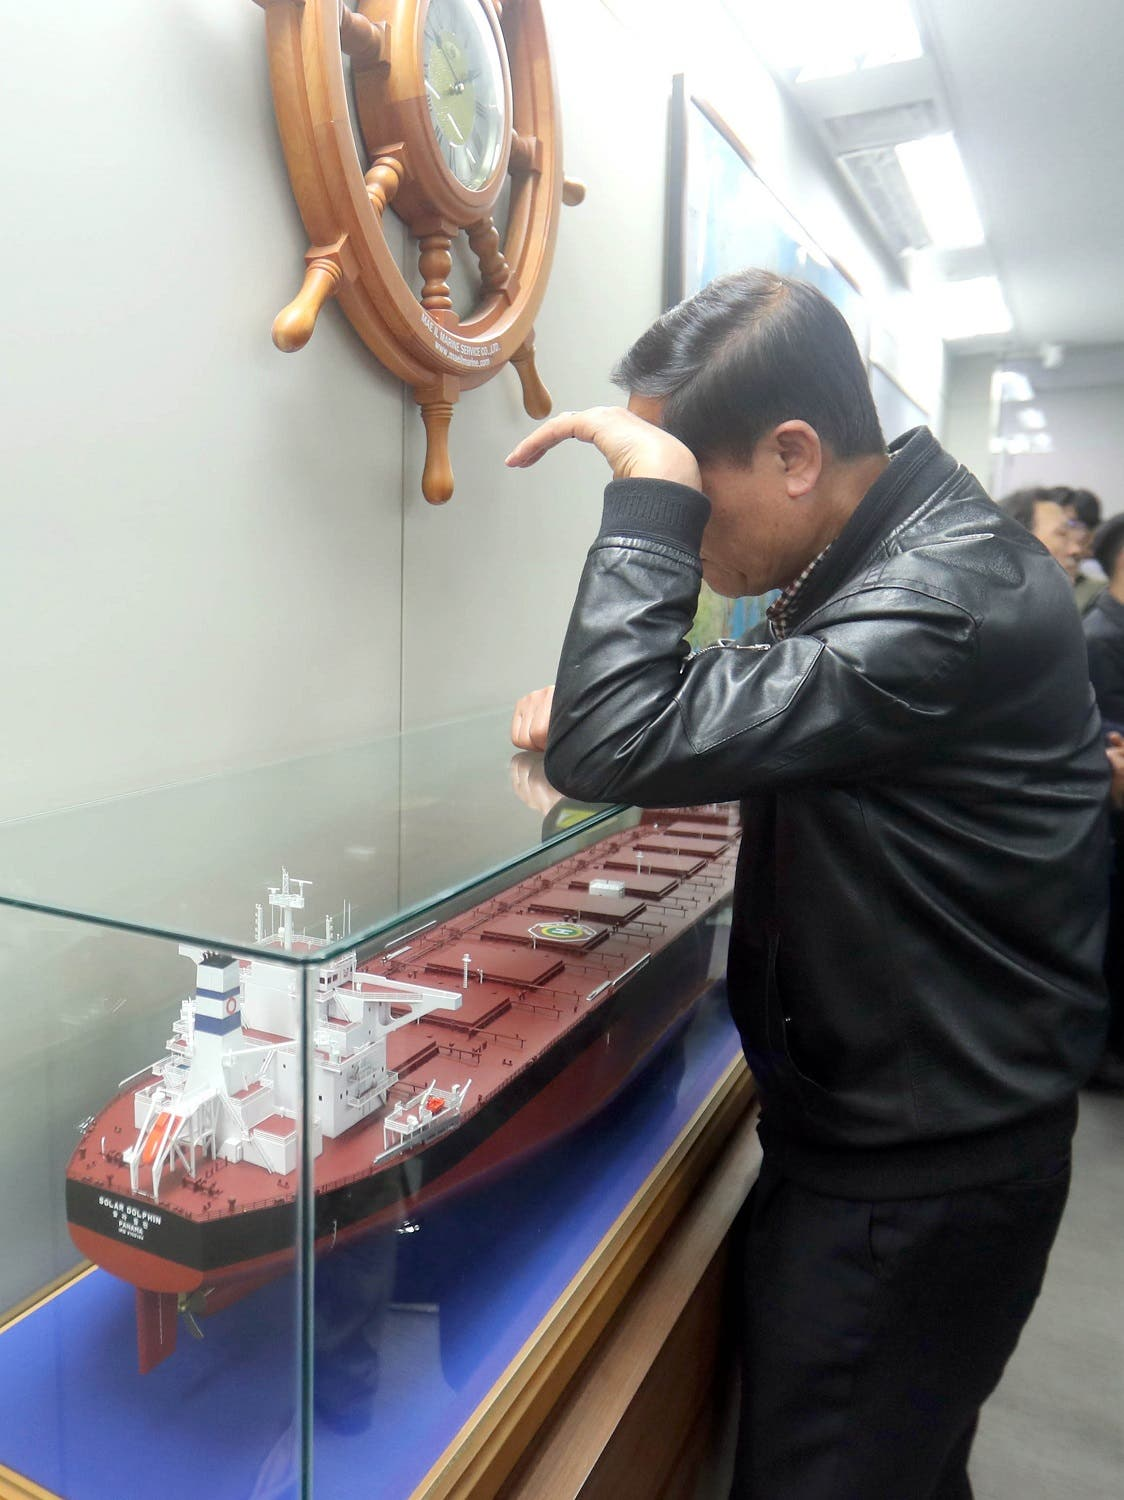 A relative of a missing crew member on board the Stella Daisy cargo ship waits for news beside a scale model display of a ship in the Polaris Shipping fleet, at one of the company's offices in the southern port city of Busan on April 2, 2017 (Photo: YONHAP/AFP)